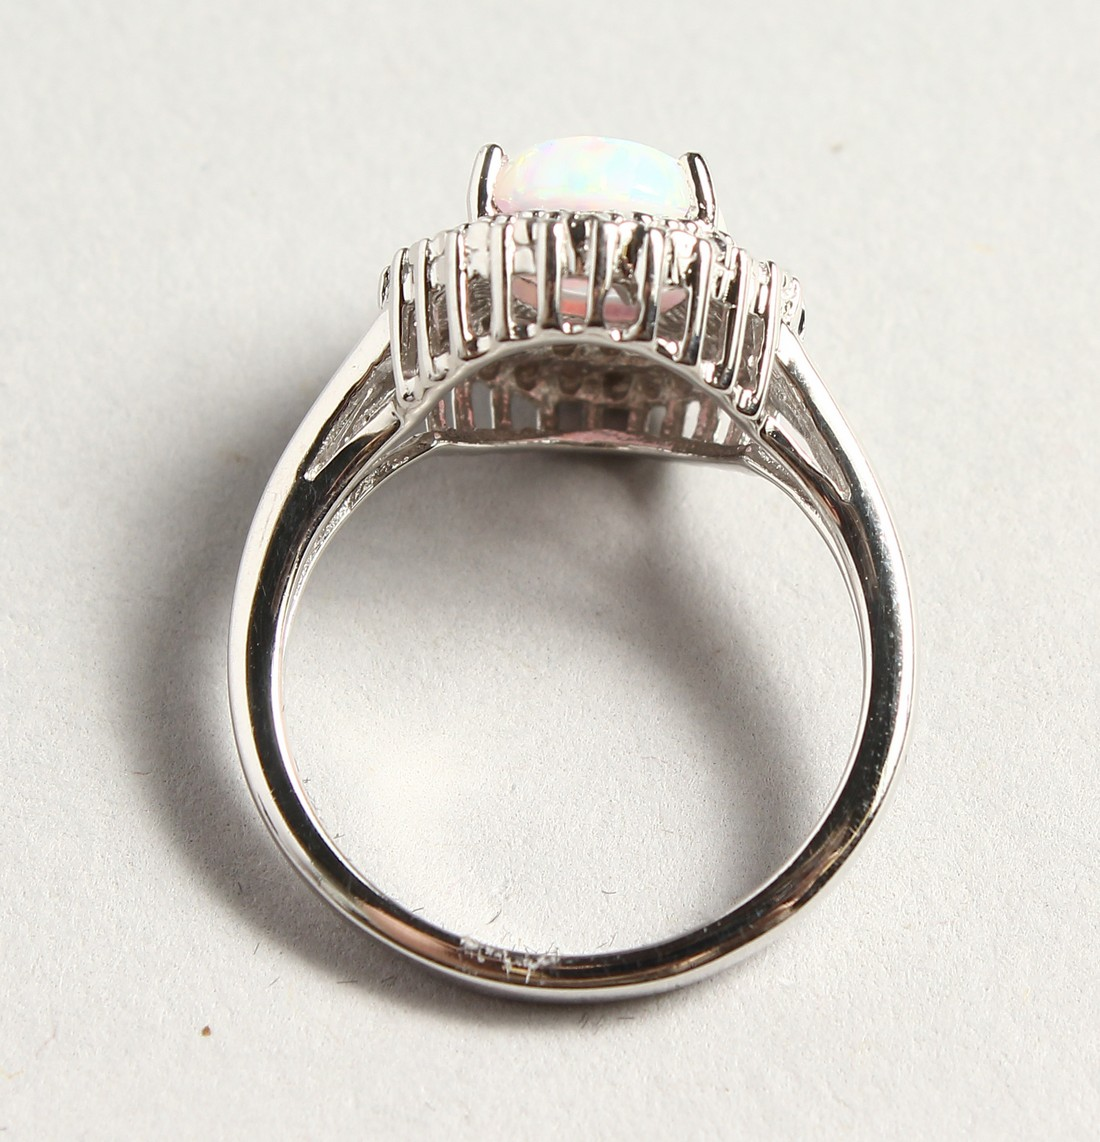 A SILVER OPALITE AND DIAMOND CLUSTER RING - Image 4 of 6